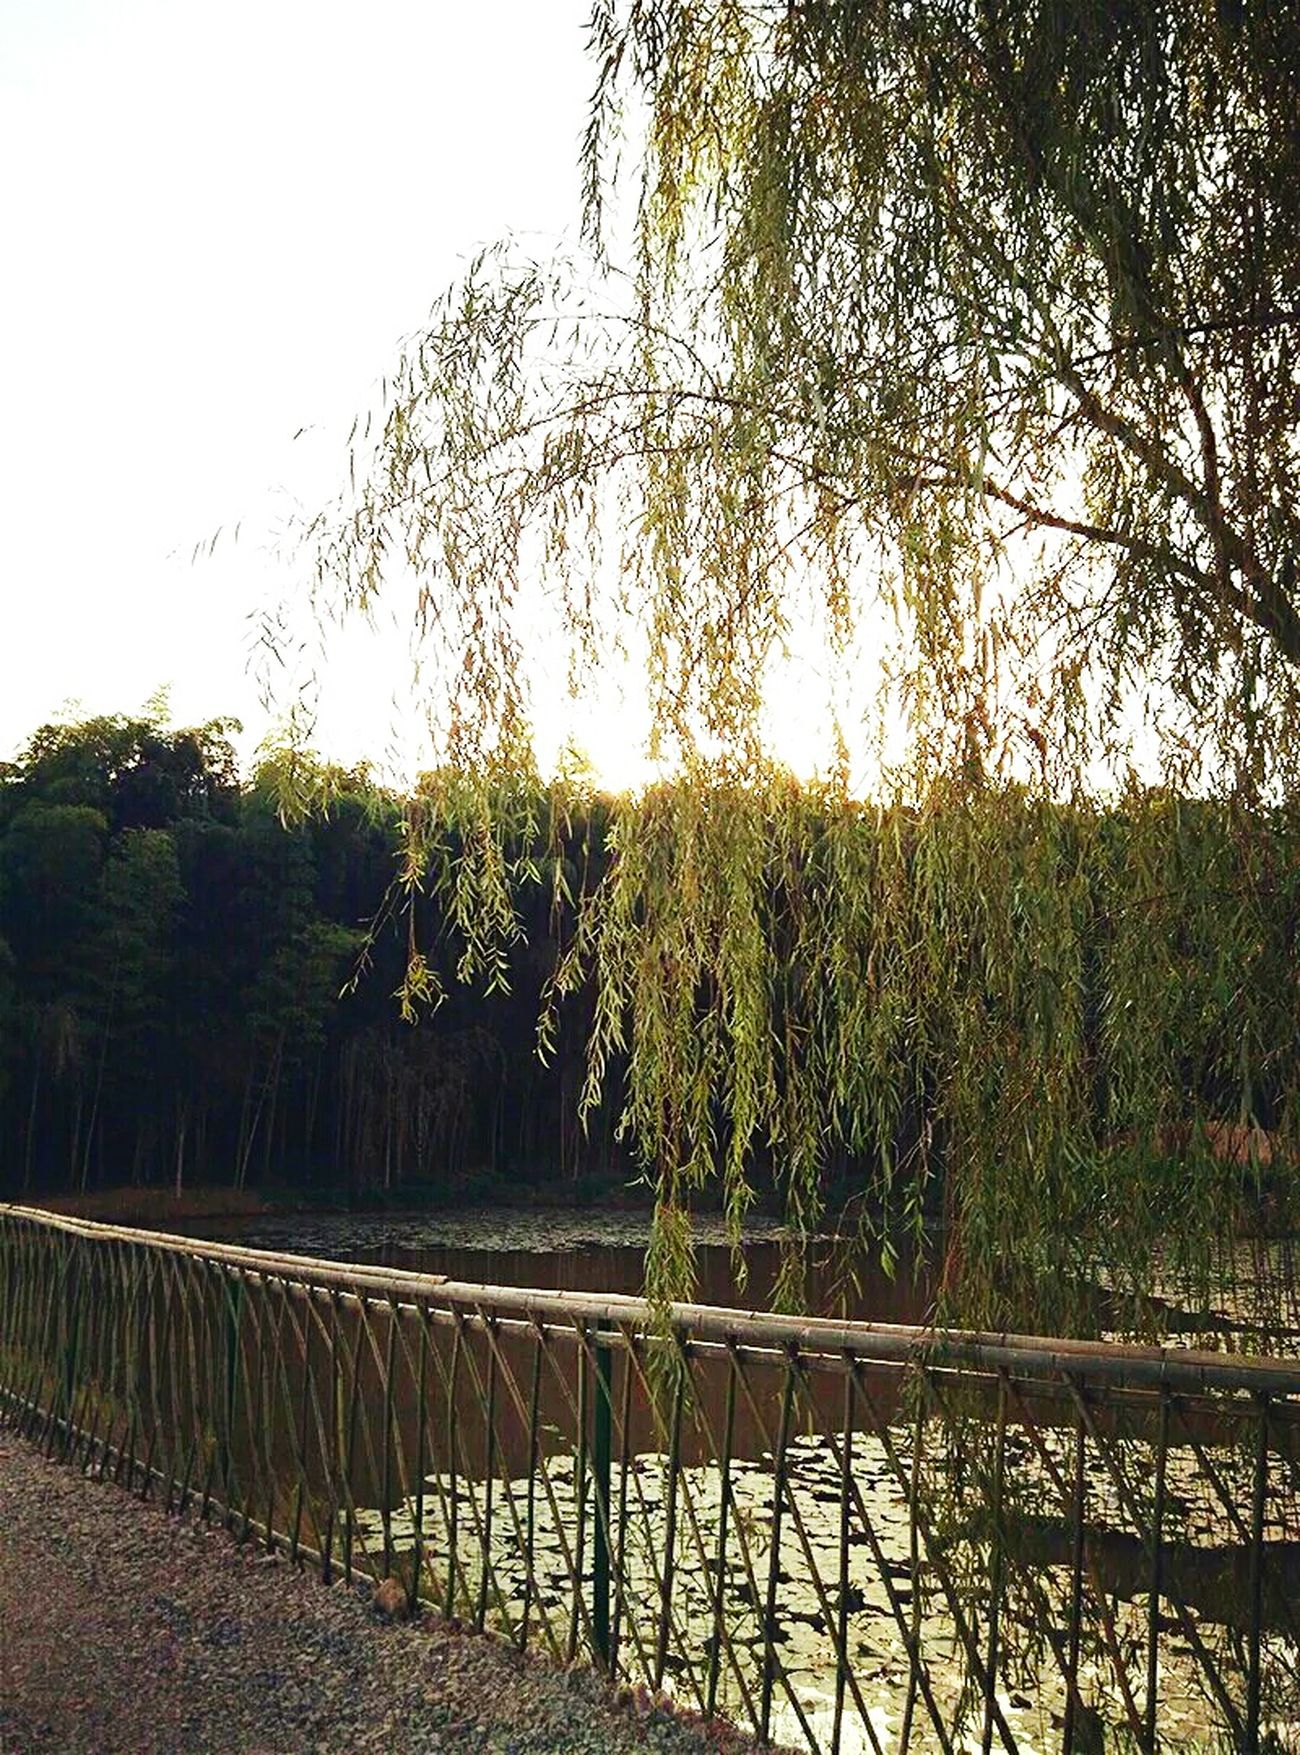 Nature Country Village Life Taking Photos Well  Free Time Life EyeEm China China Relaxing Old Town On The Road Travel Relax Enjoy Life Good Times Sky Good Wether Stay Trees Water Rivers